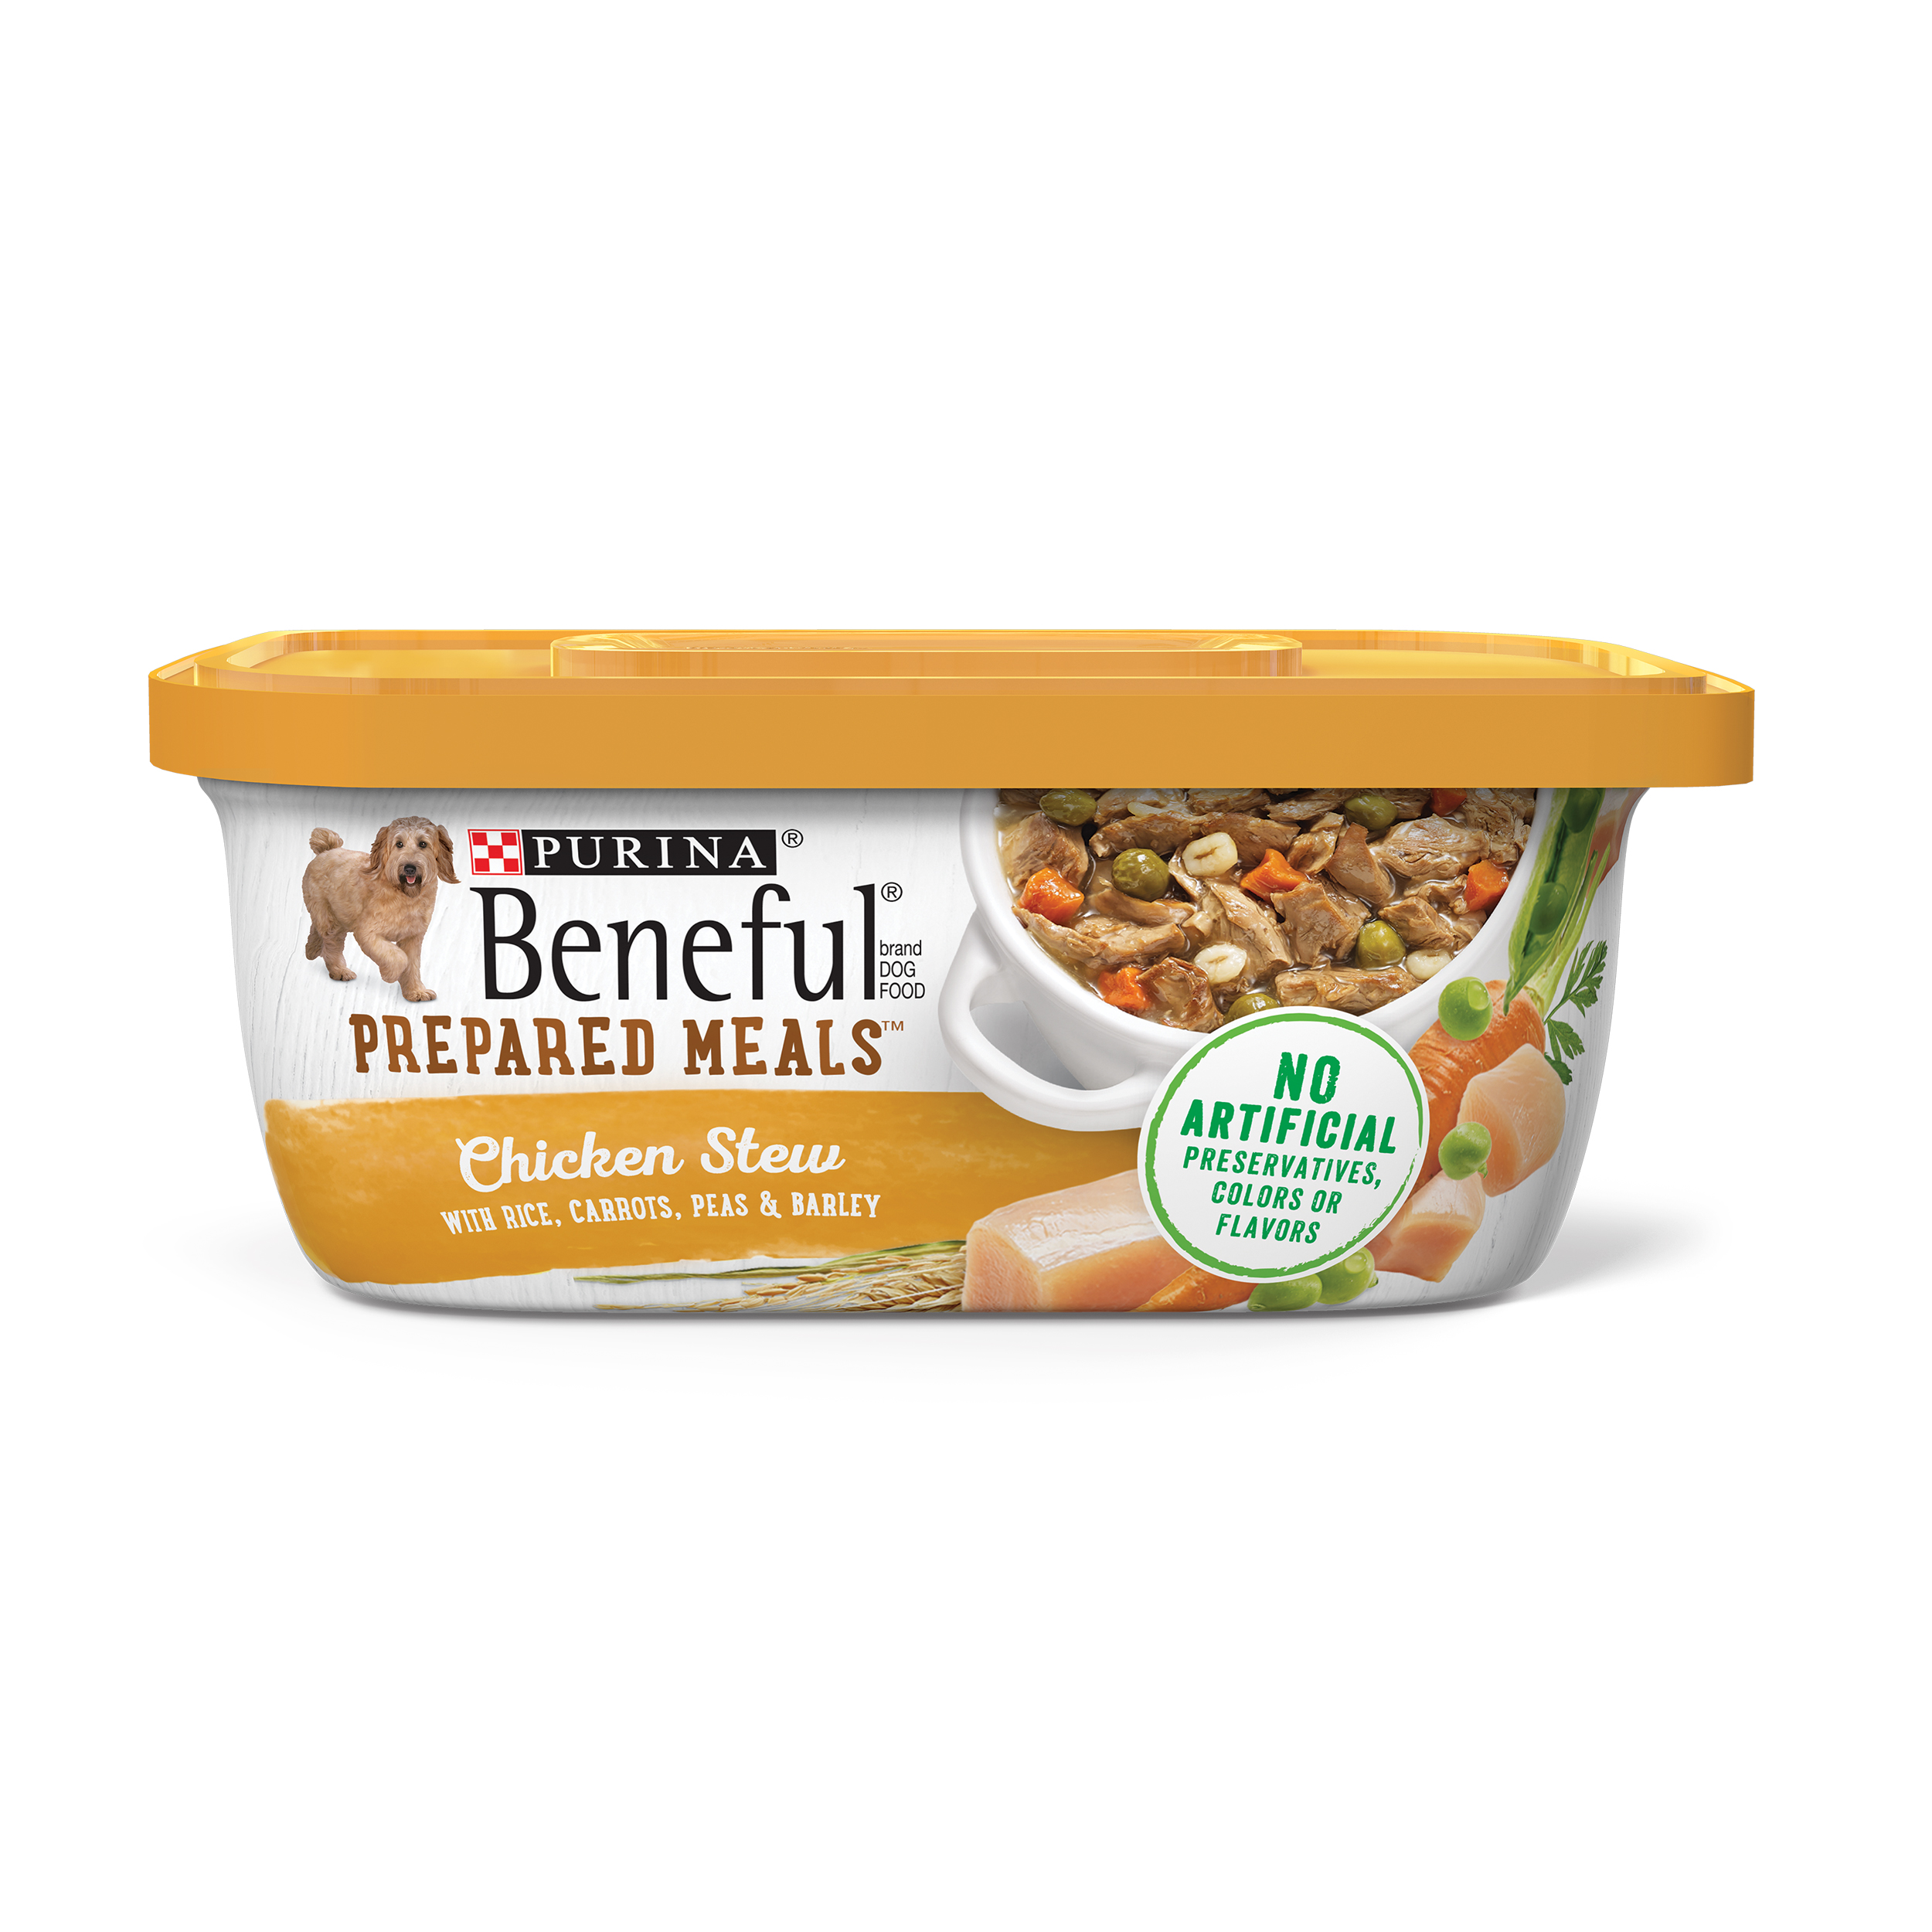 Purina Beneful Prepared Meals Chicken Stew Adult Wet Dog Food - 10 oz. Tub